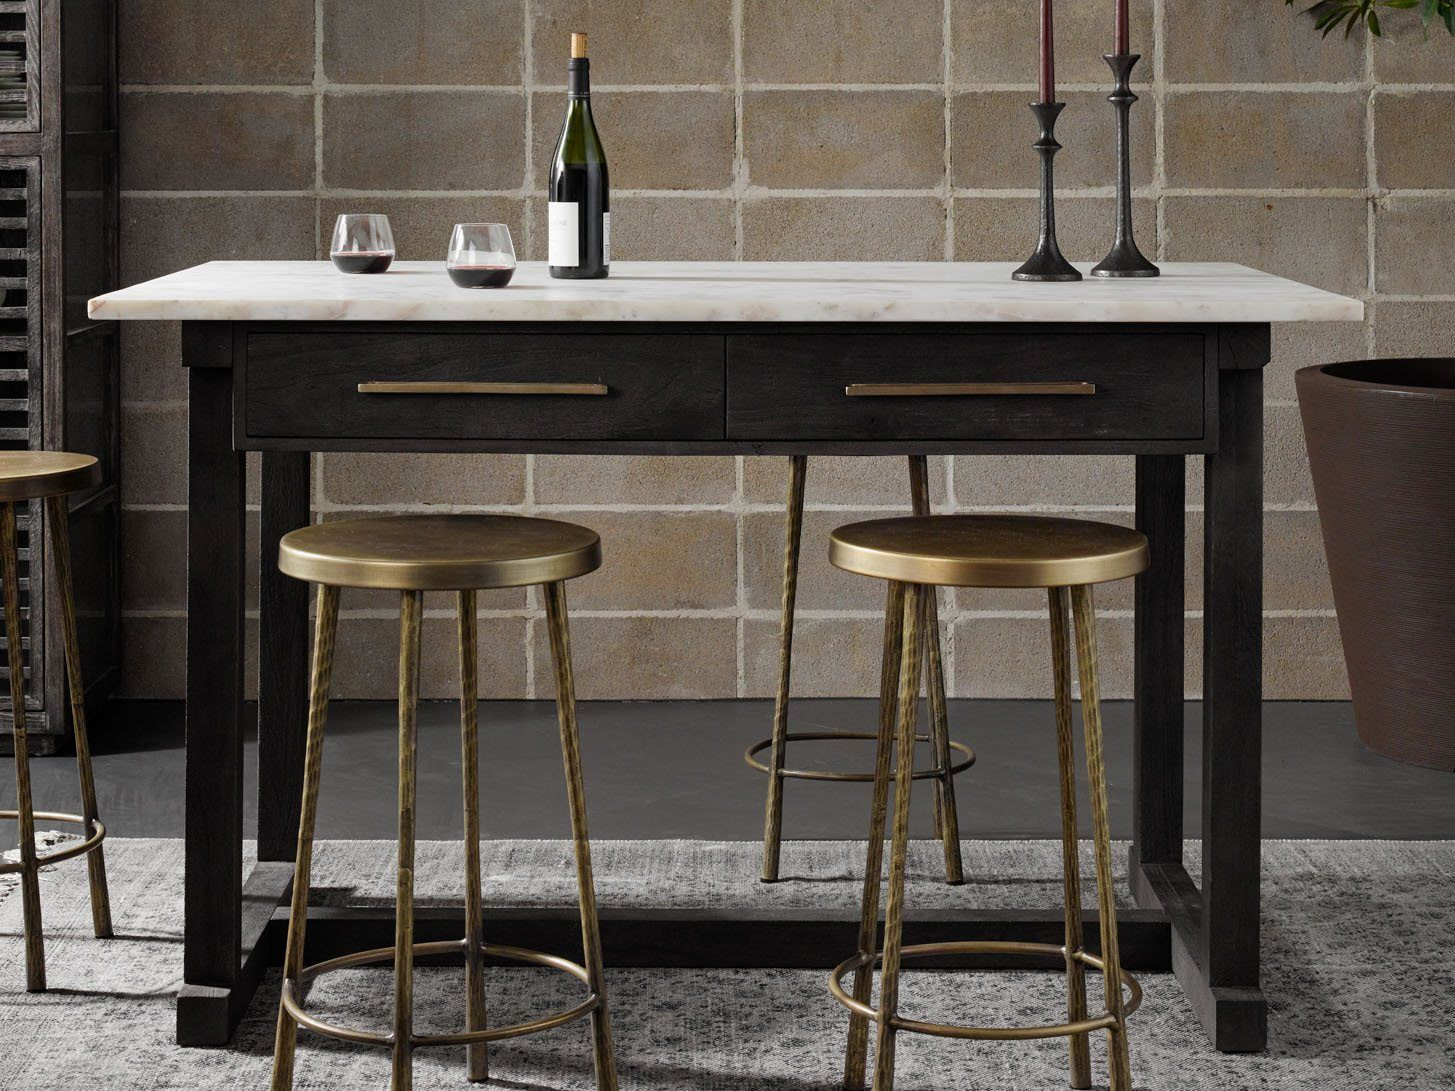 Pin On Design By Room Dining